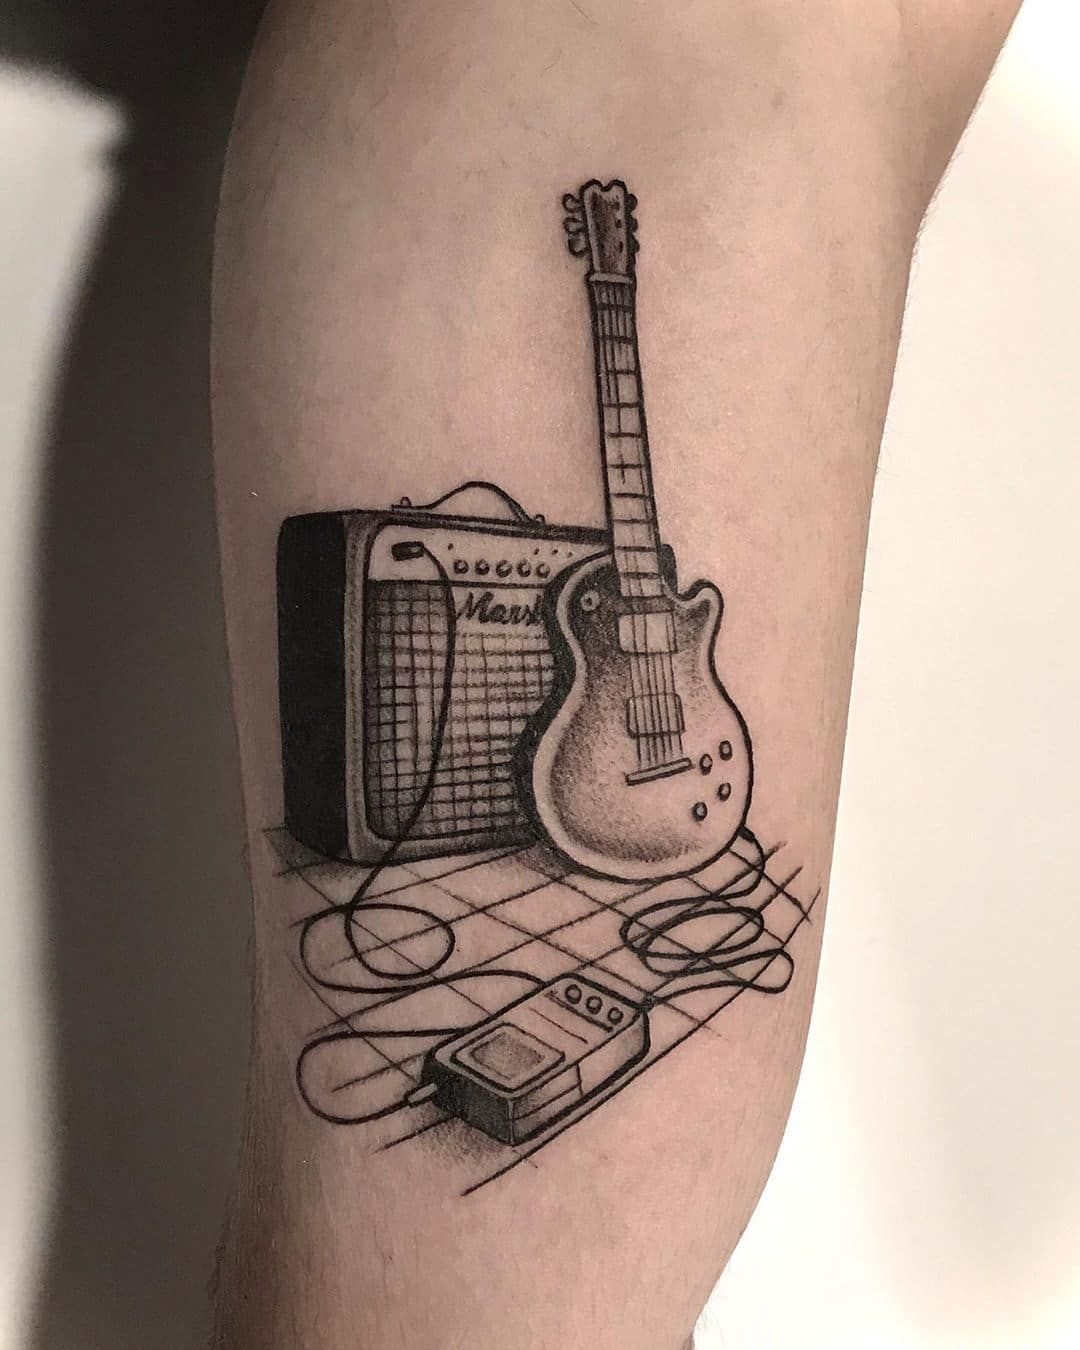 15 Best Guitar Tattoo Designs With Meanings For Girls Guys Guitar Tattoo Design Guitar Tattoo Tattoo Designs